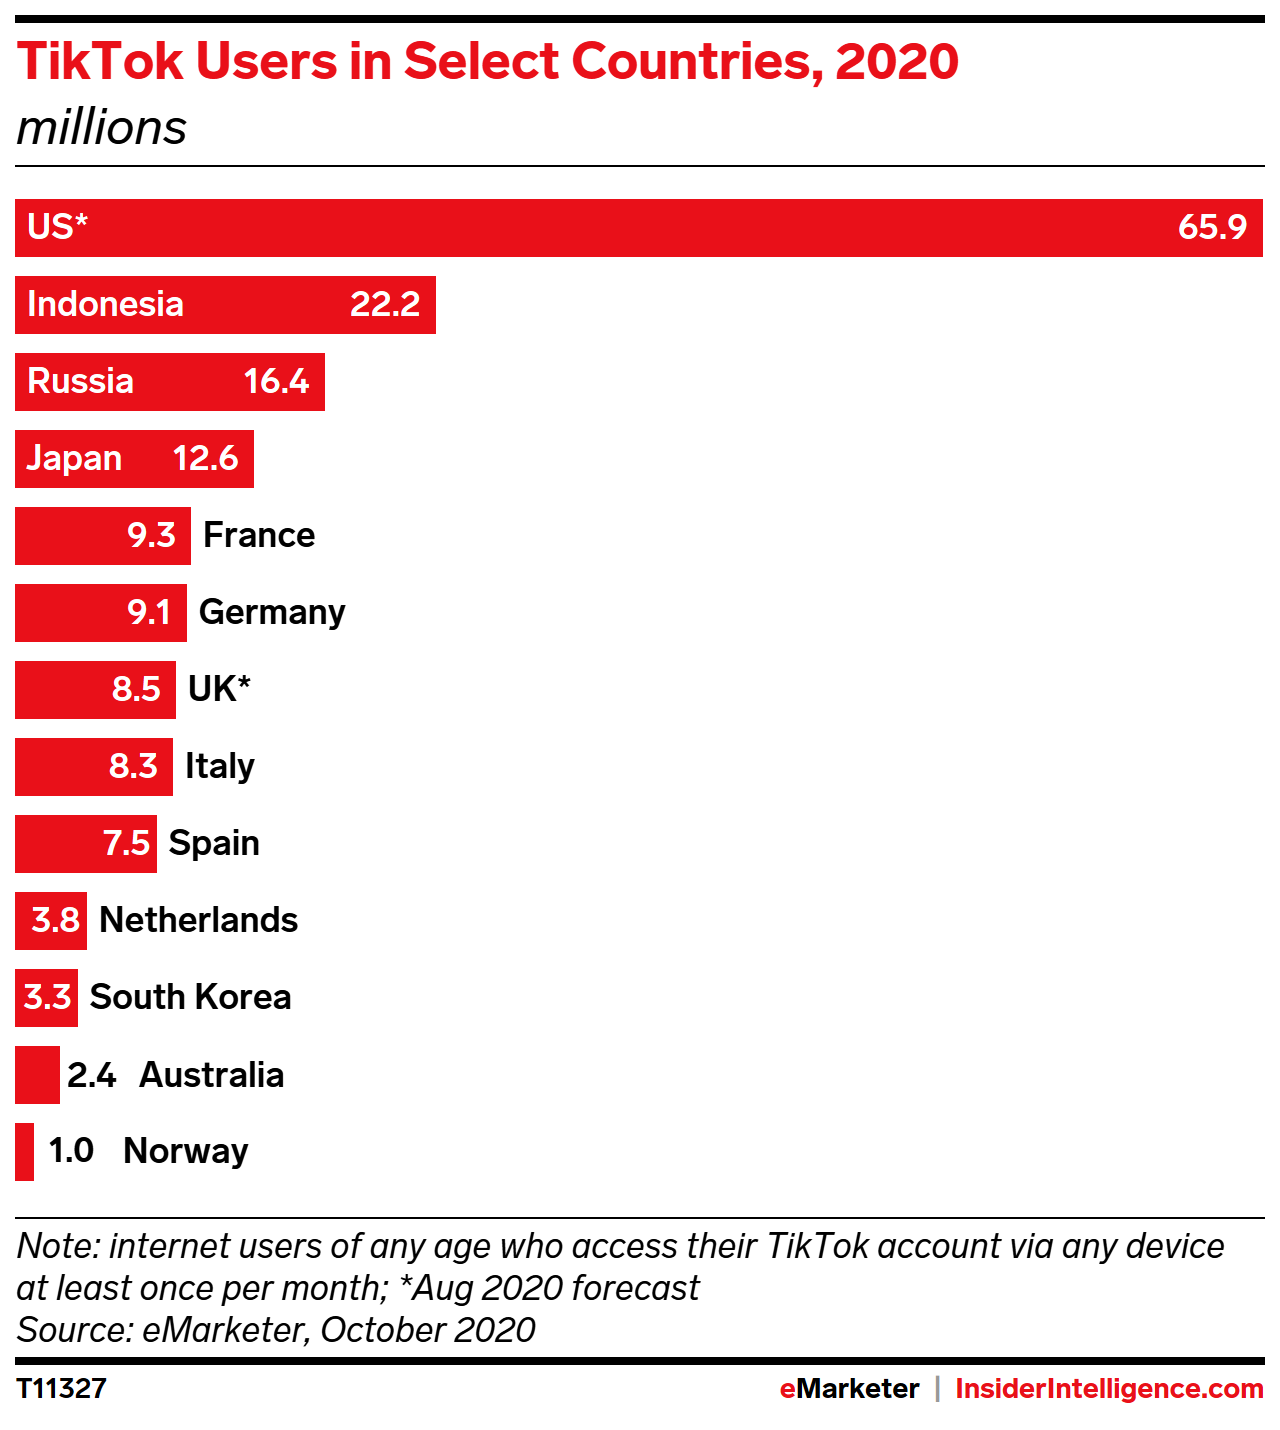 TikTok Users in Select Countries, 2020 (millions)